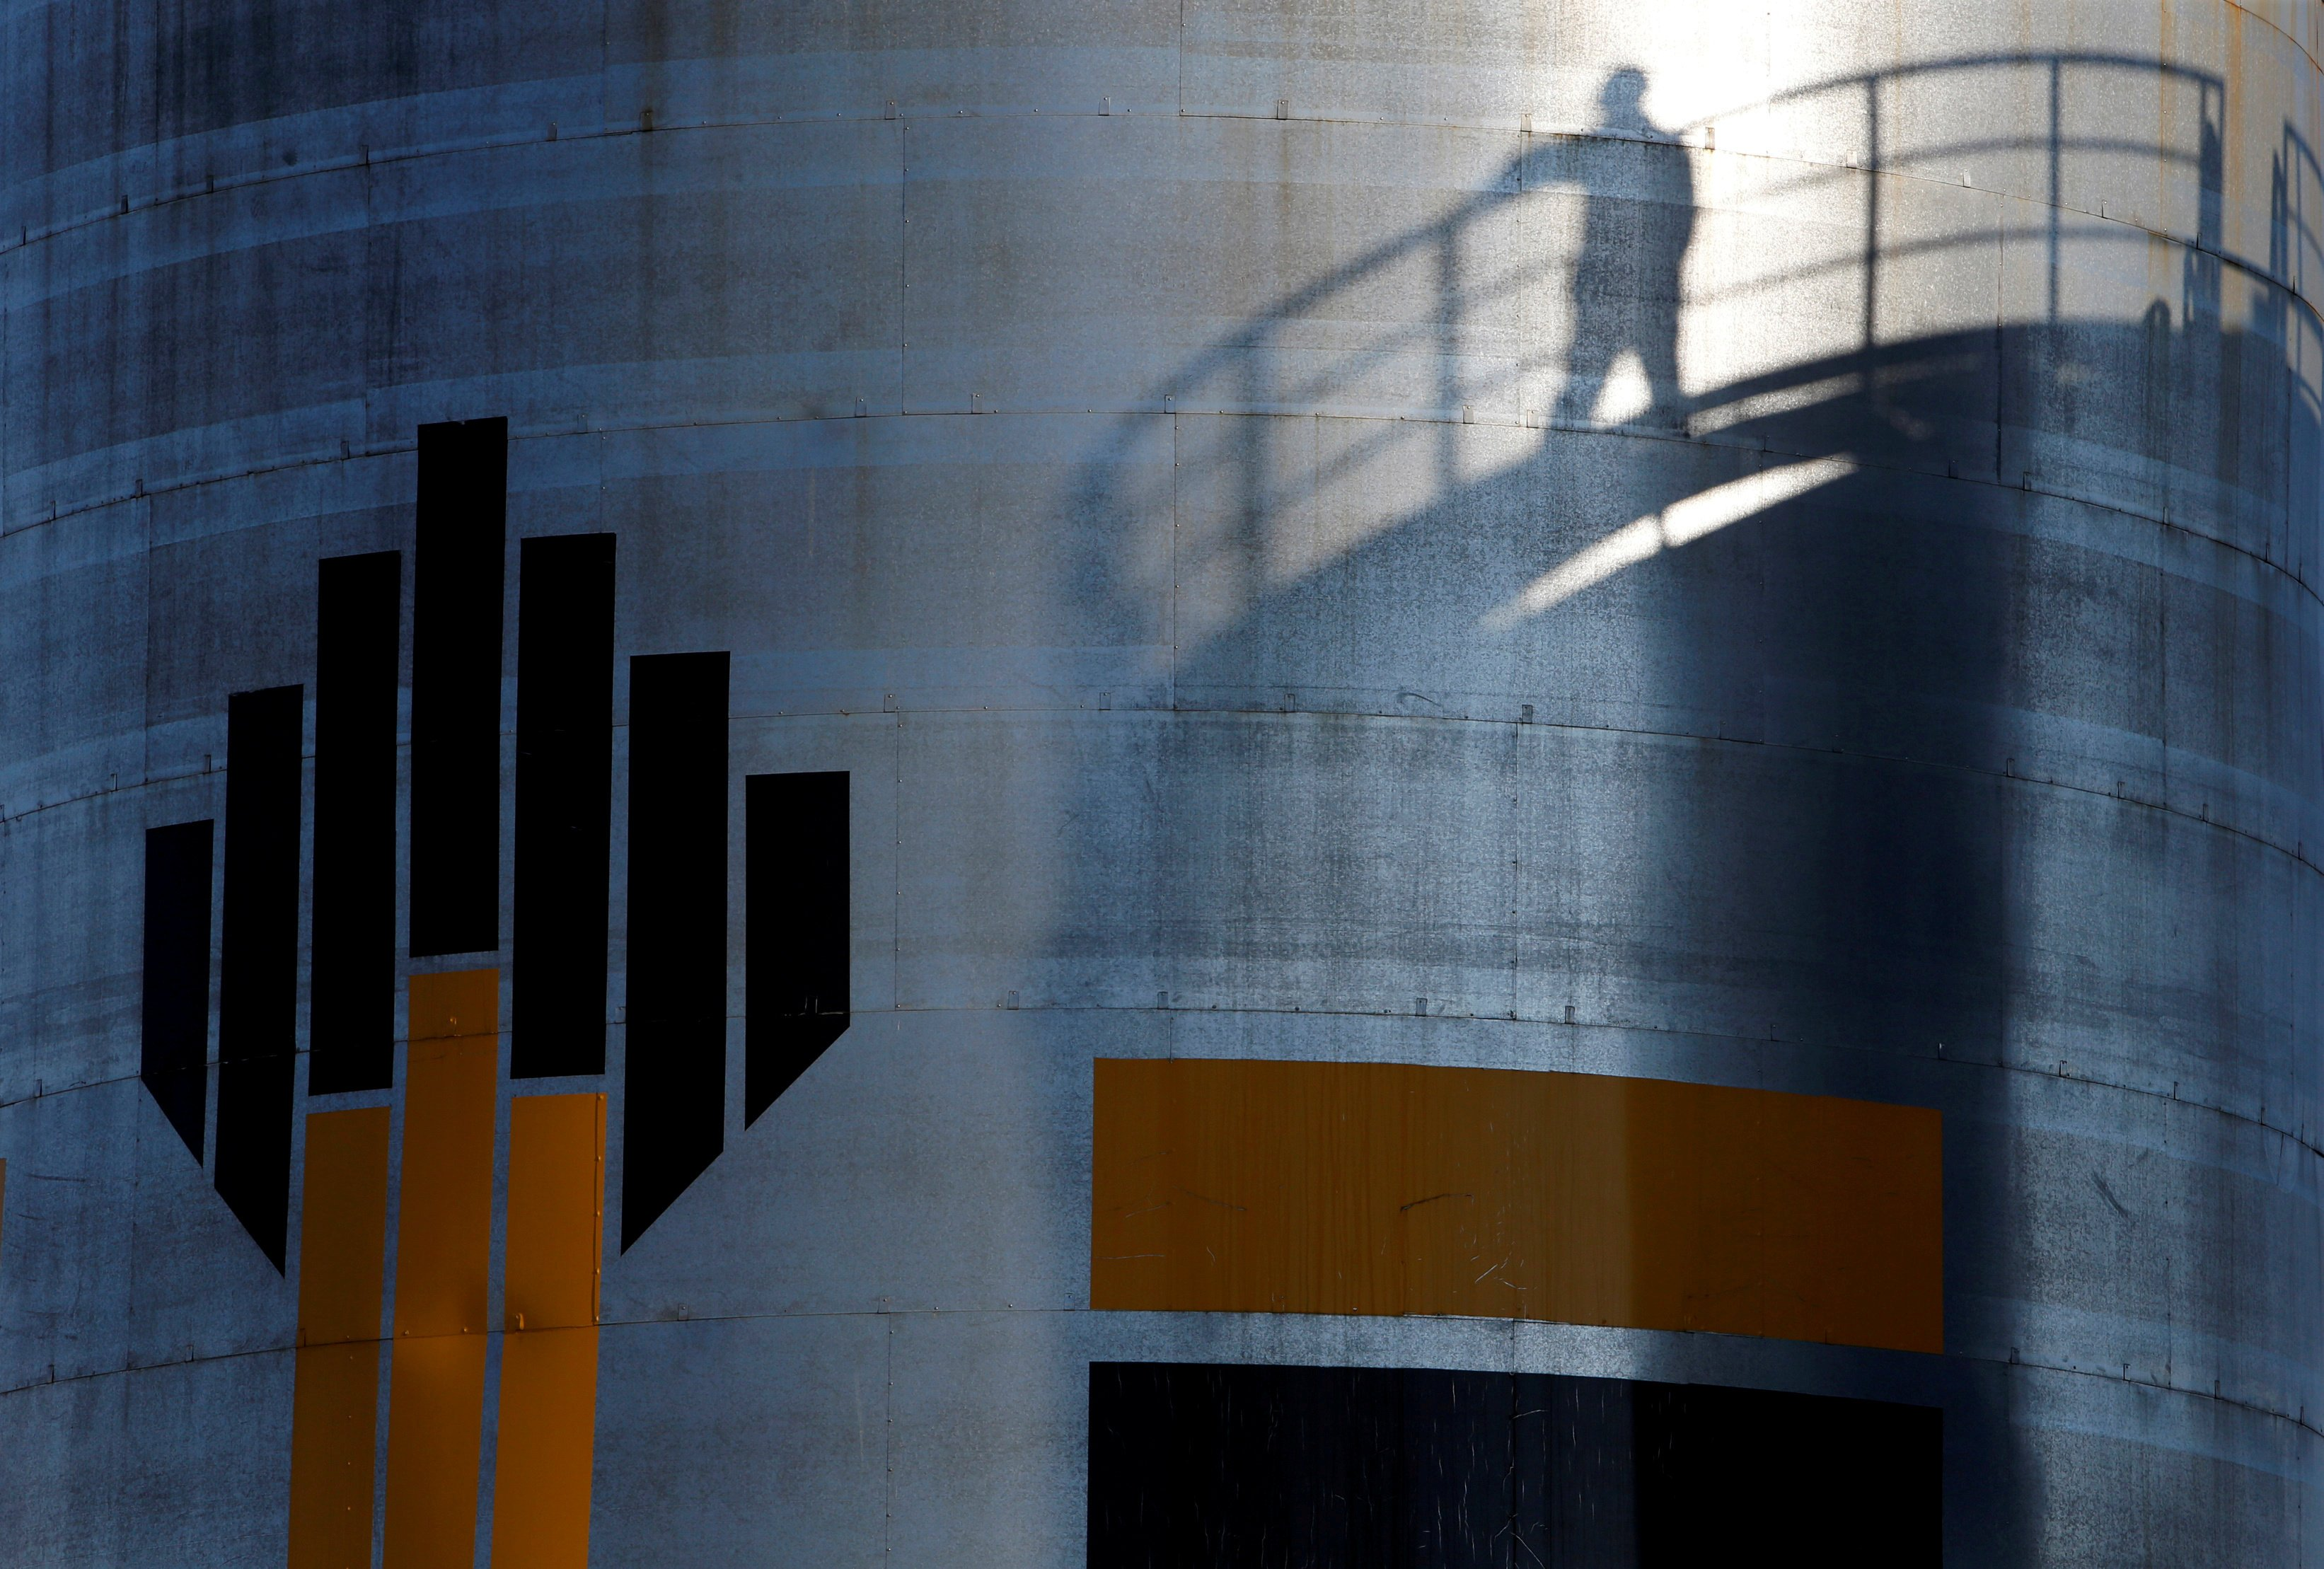 Rosneft, Gazprom map new Arctic resources